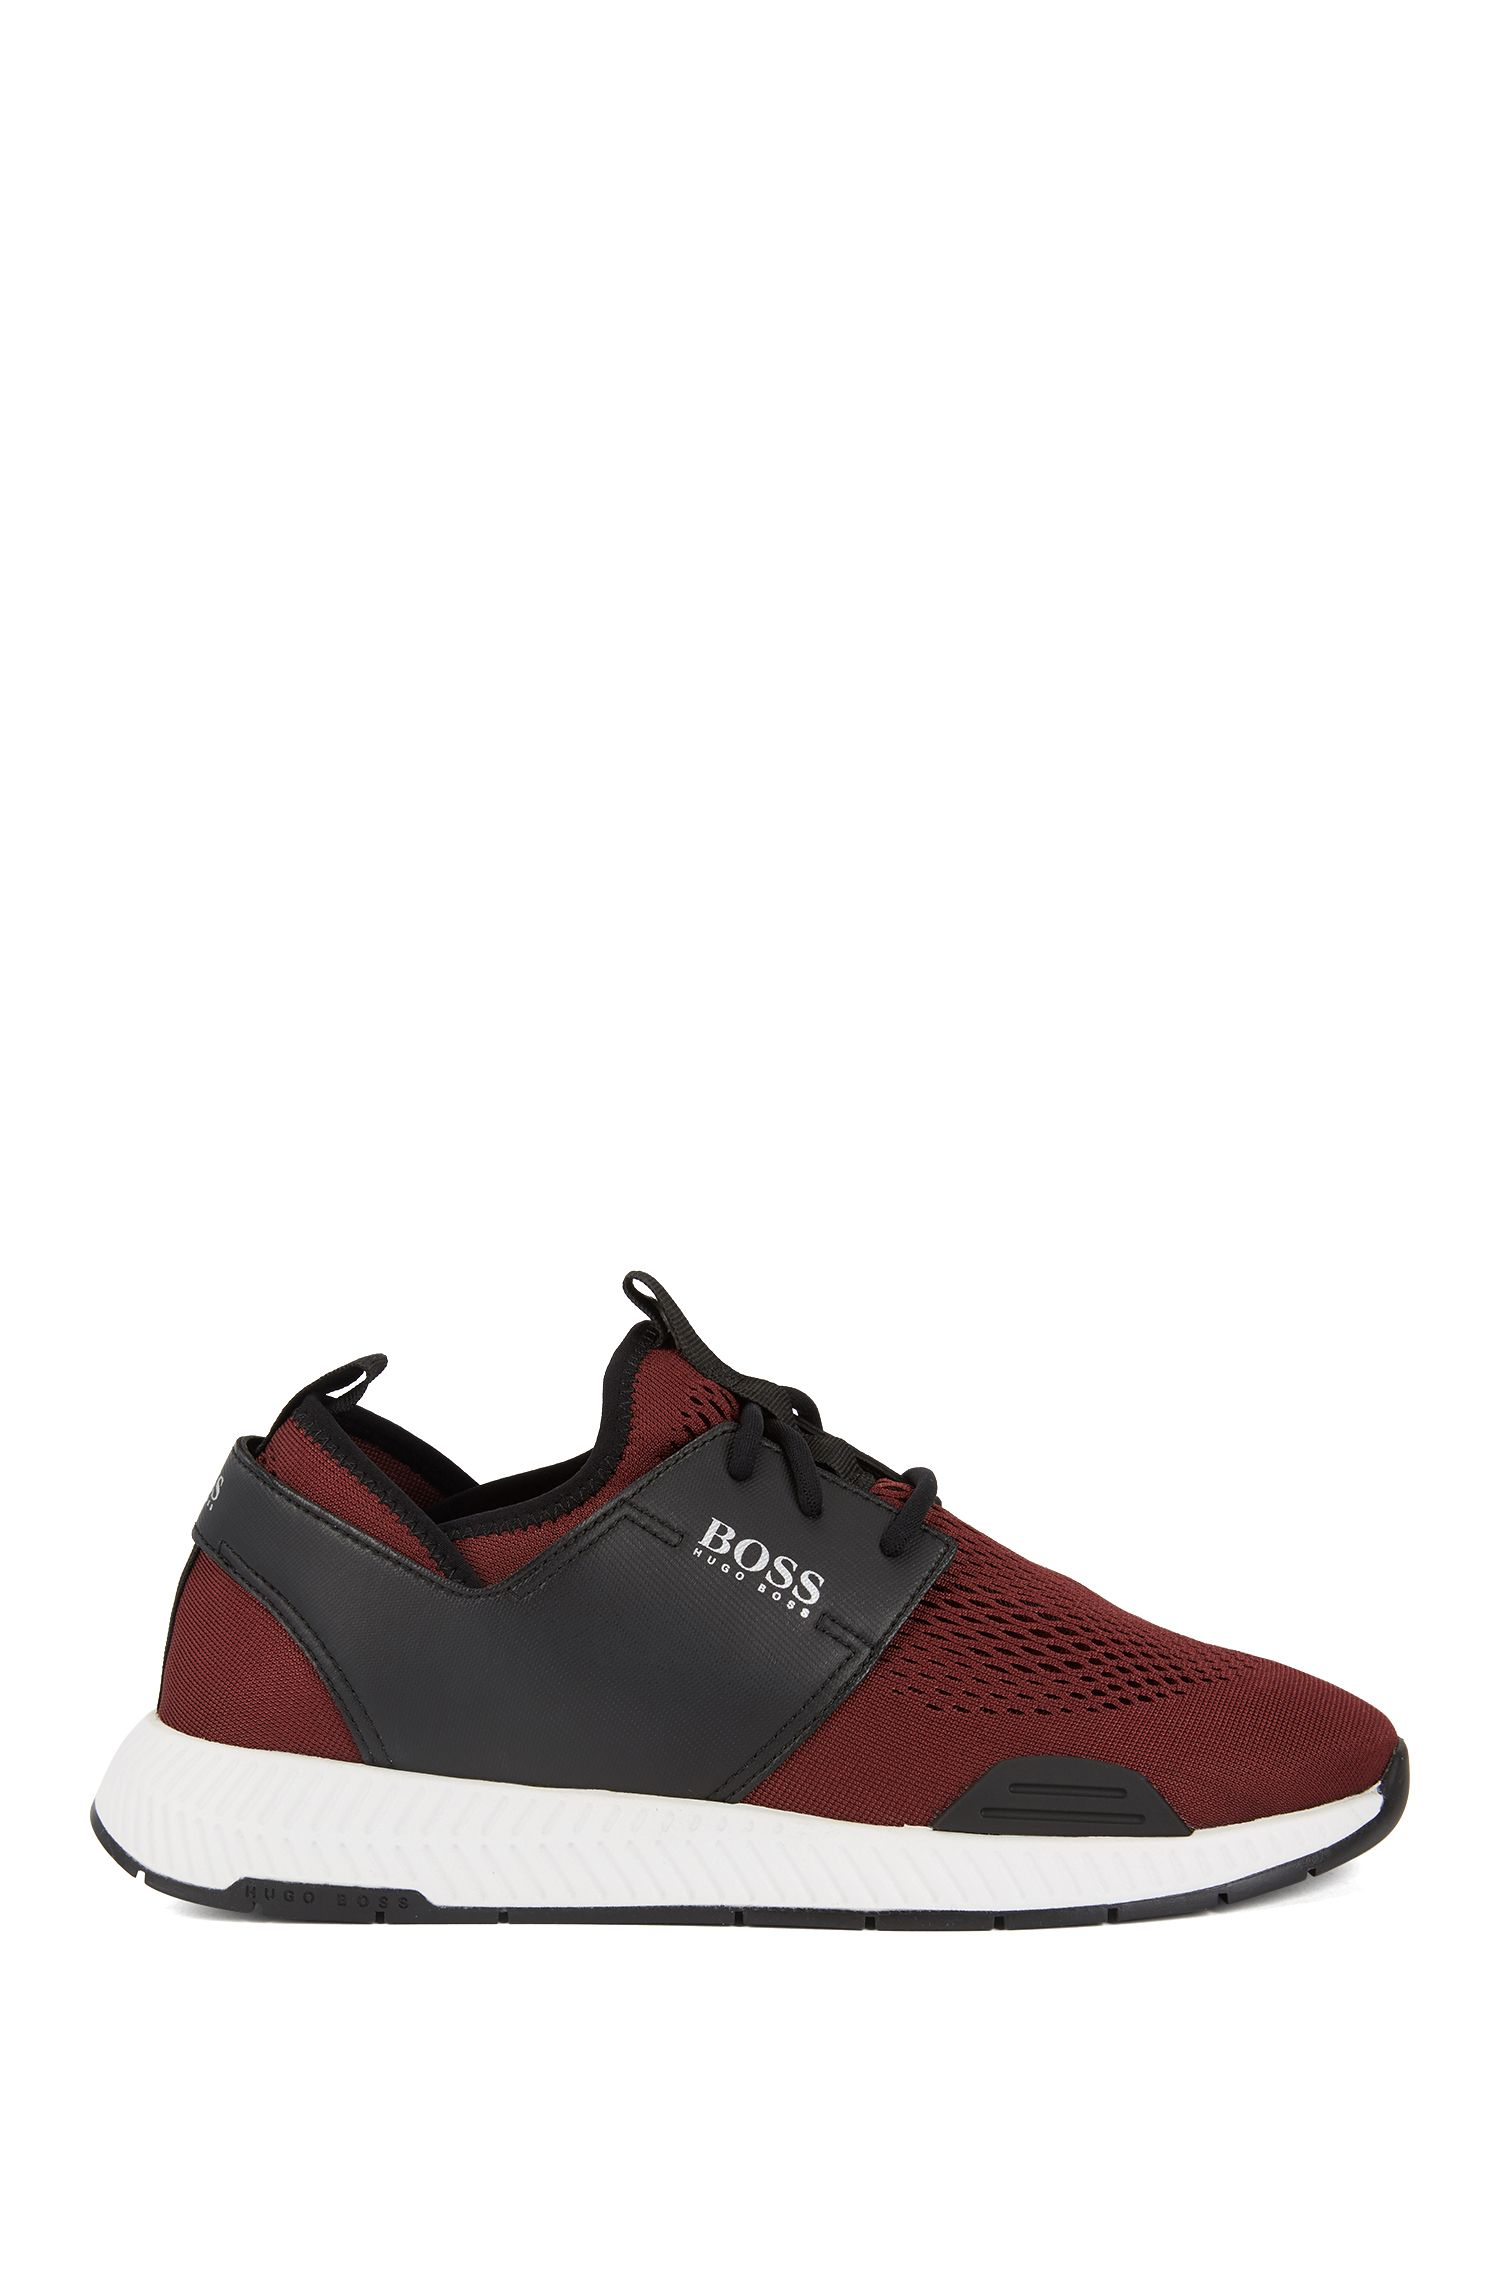 Running-inspired sneakers with mesh uppers, Dark Red